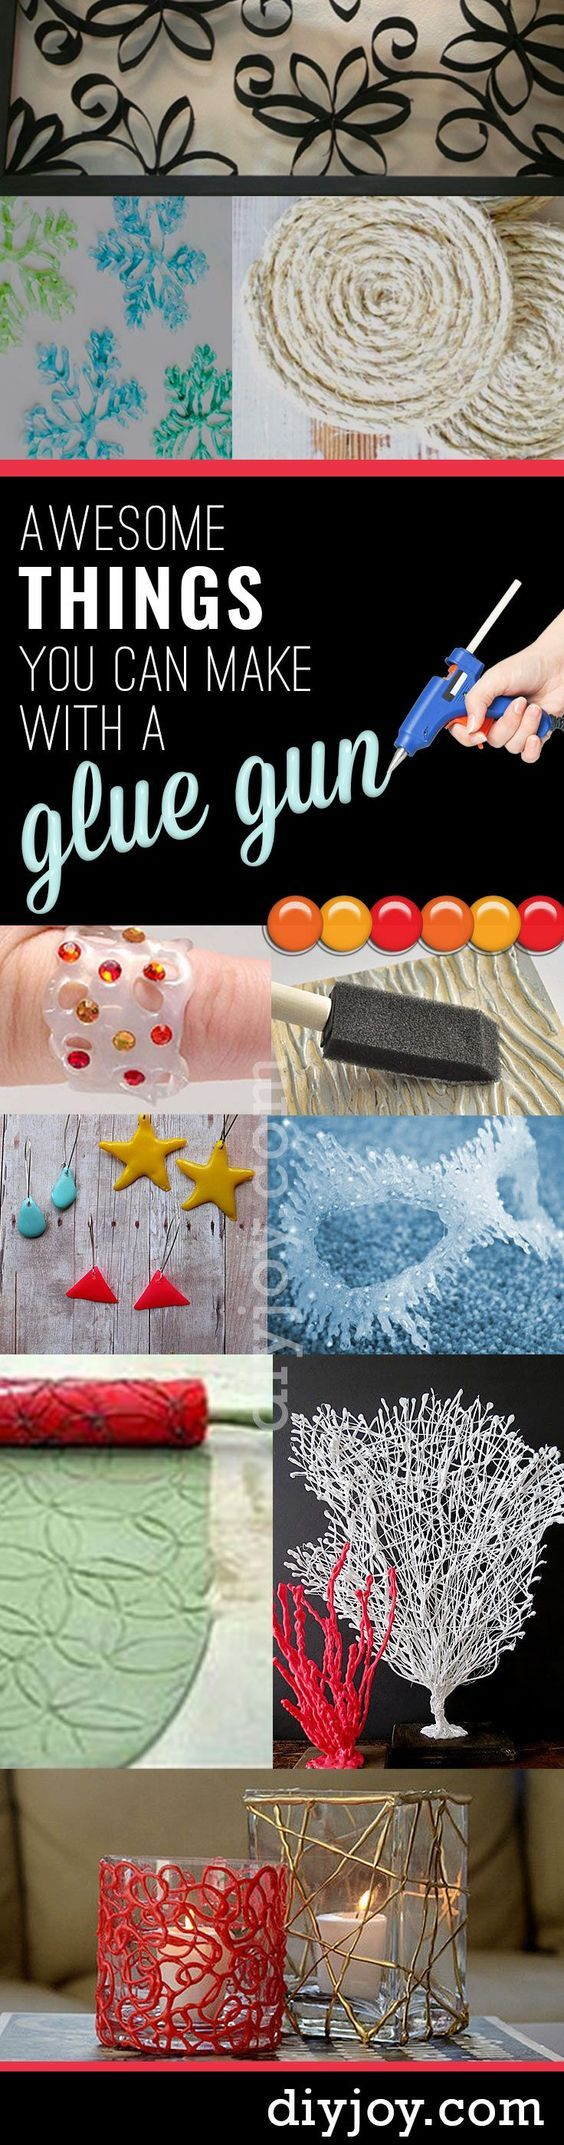 Fun Crafts To Do With A Hot Glue Gun | Best Hot Glue Gun Crafts, DIY Projects and Arts and Crafts Ideas Using Glue Gun Sticks |  diyjoy.com/...: